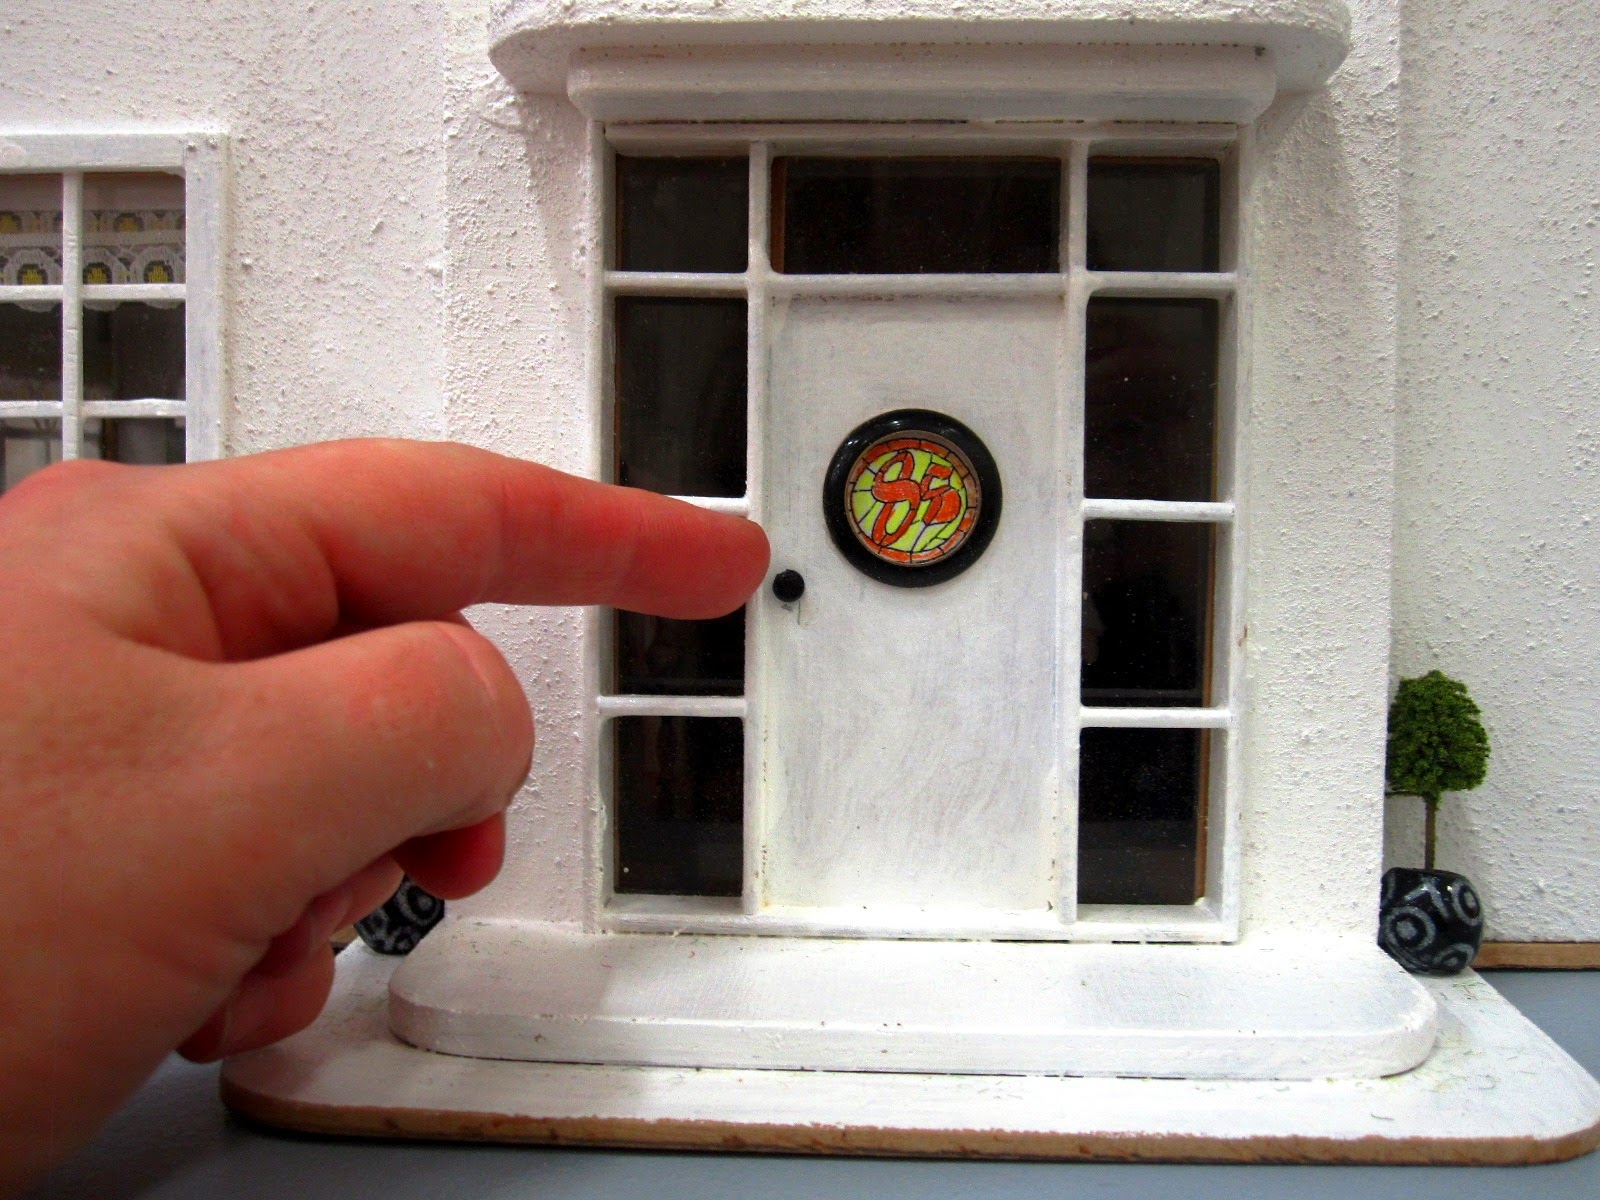 Close-up view of the front door or an Art Deco moderne-style dolls house by Anne Reid, with hand to show the scale of the house (1/24th)